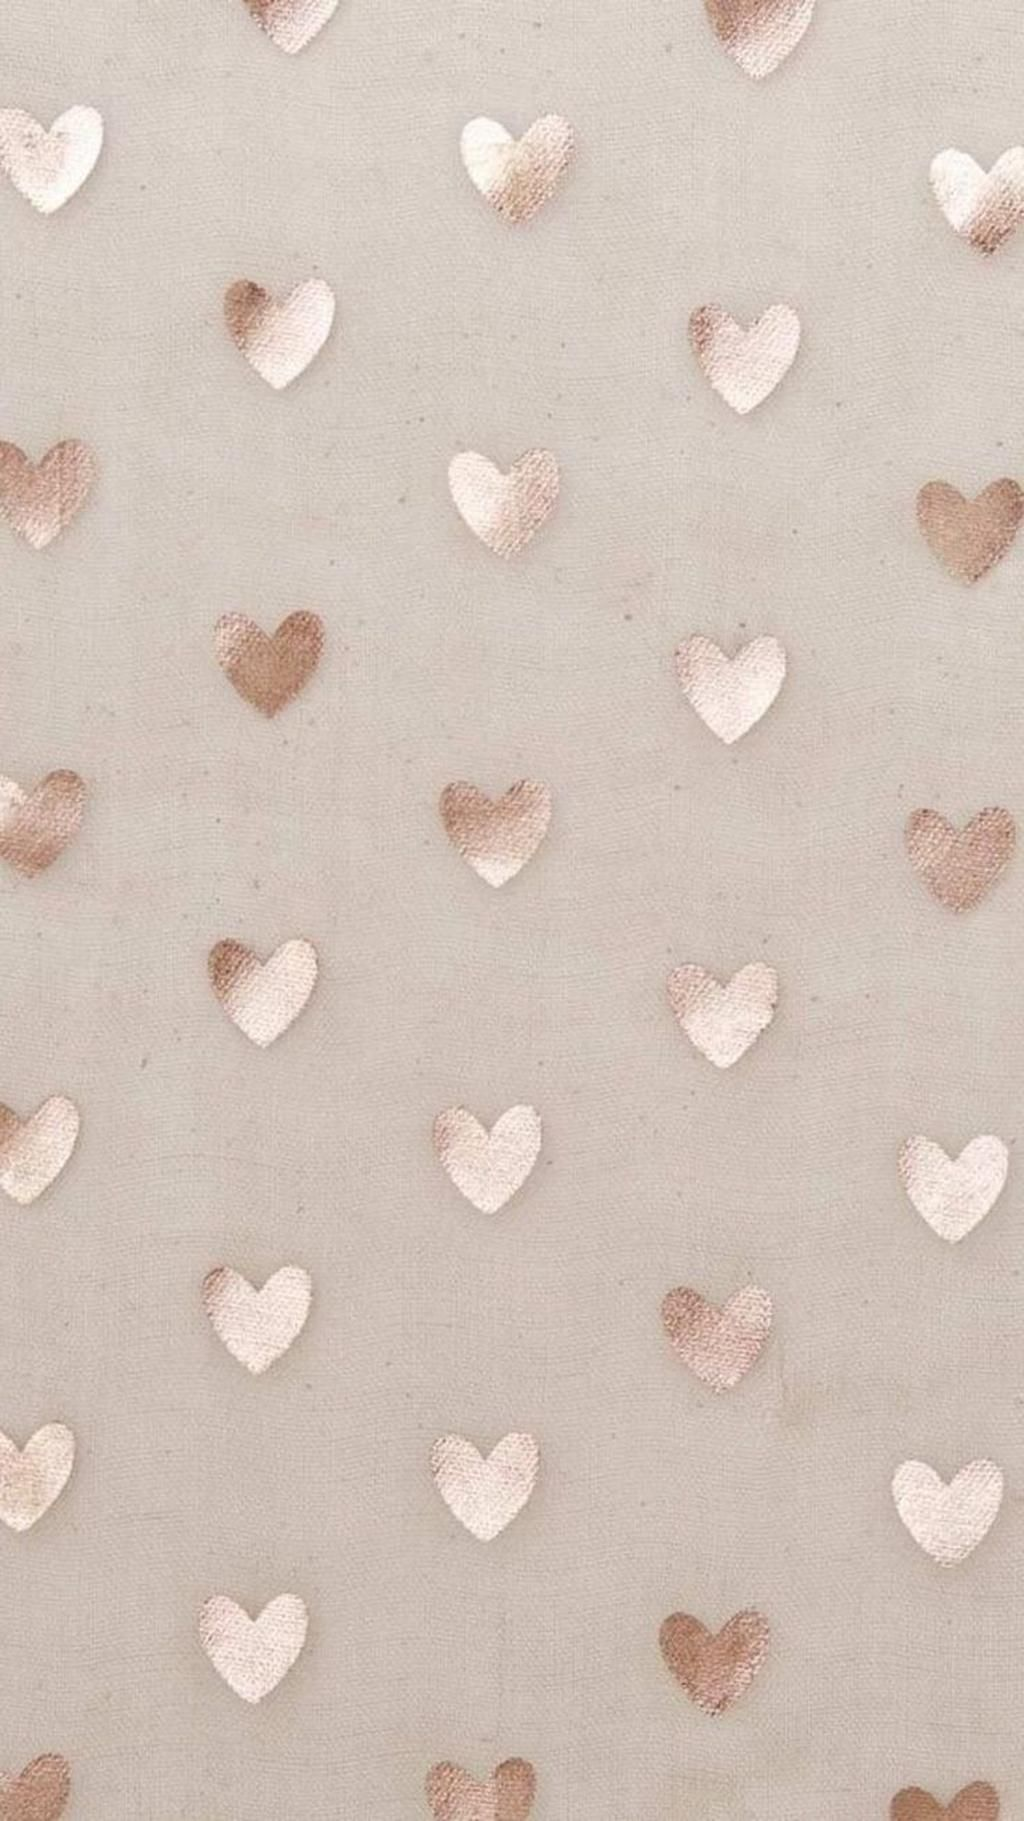 Pin By Priscila On Iphone Backgrounds Gold Wallpaper Iphone Heart Iphone Wallpaper Gold Wallpaper Background